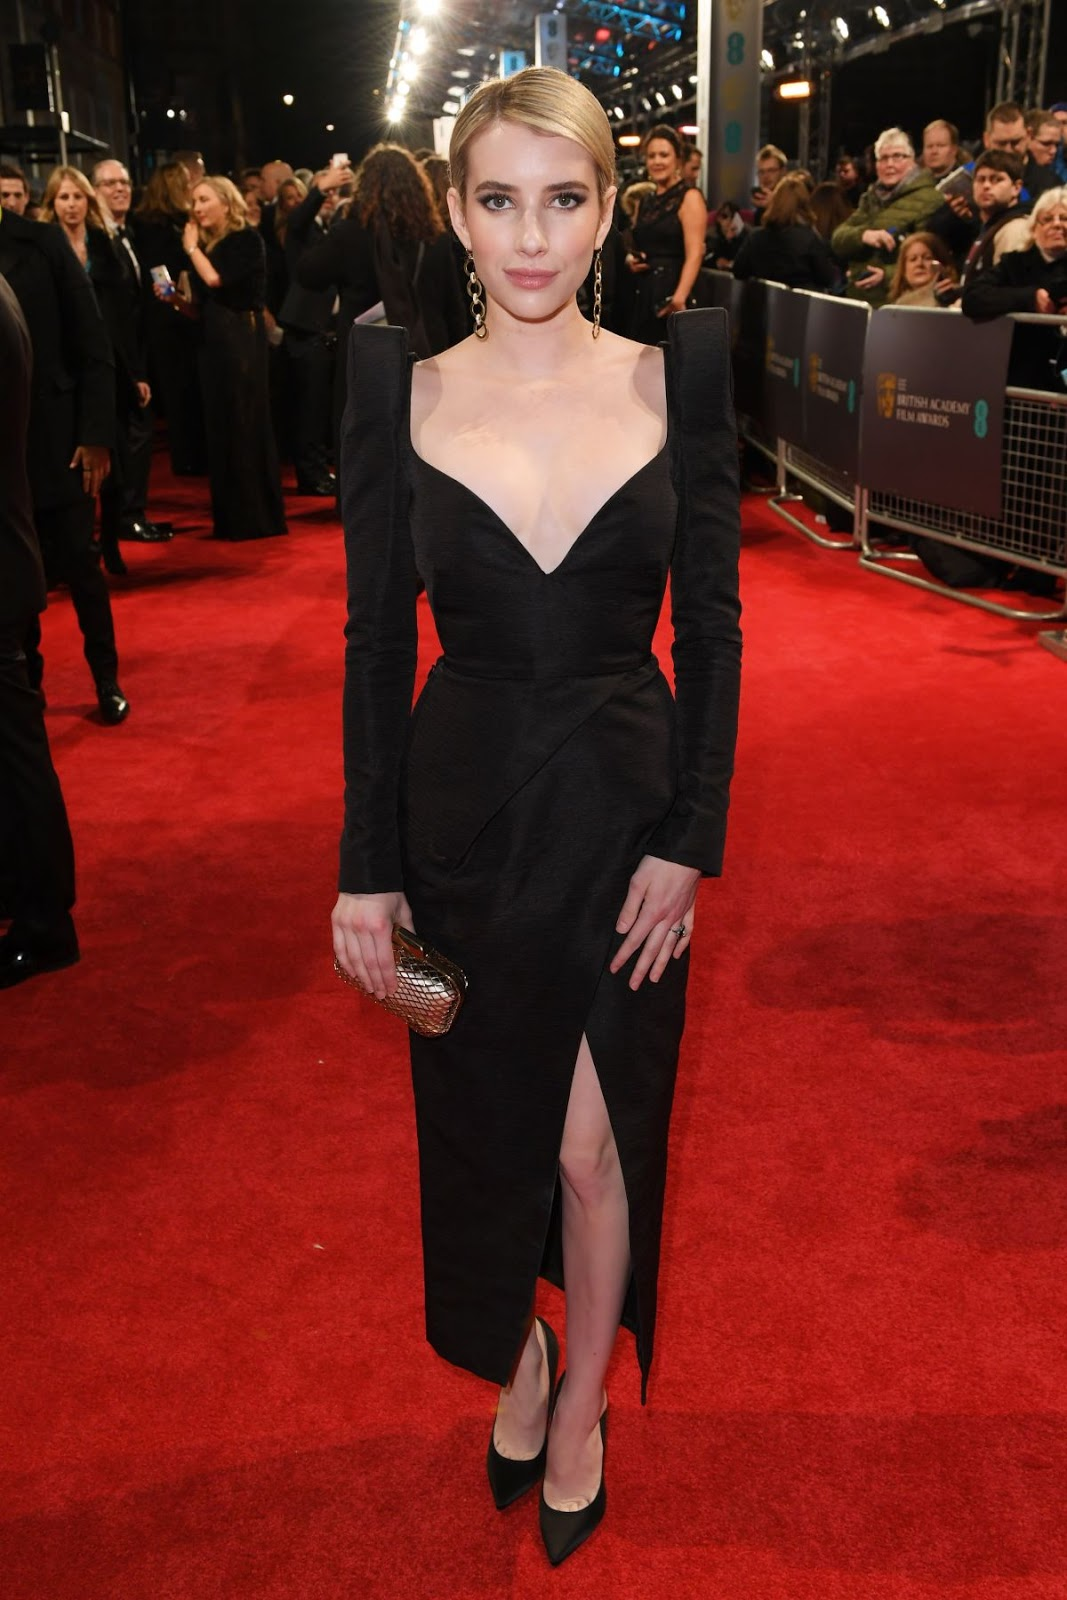 Emma Roberts Wears Low Cut Black Dress To The 2018 Baftas